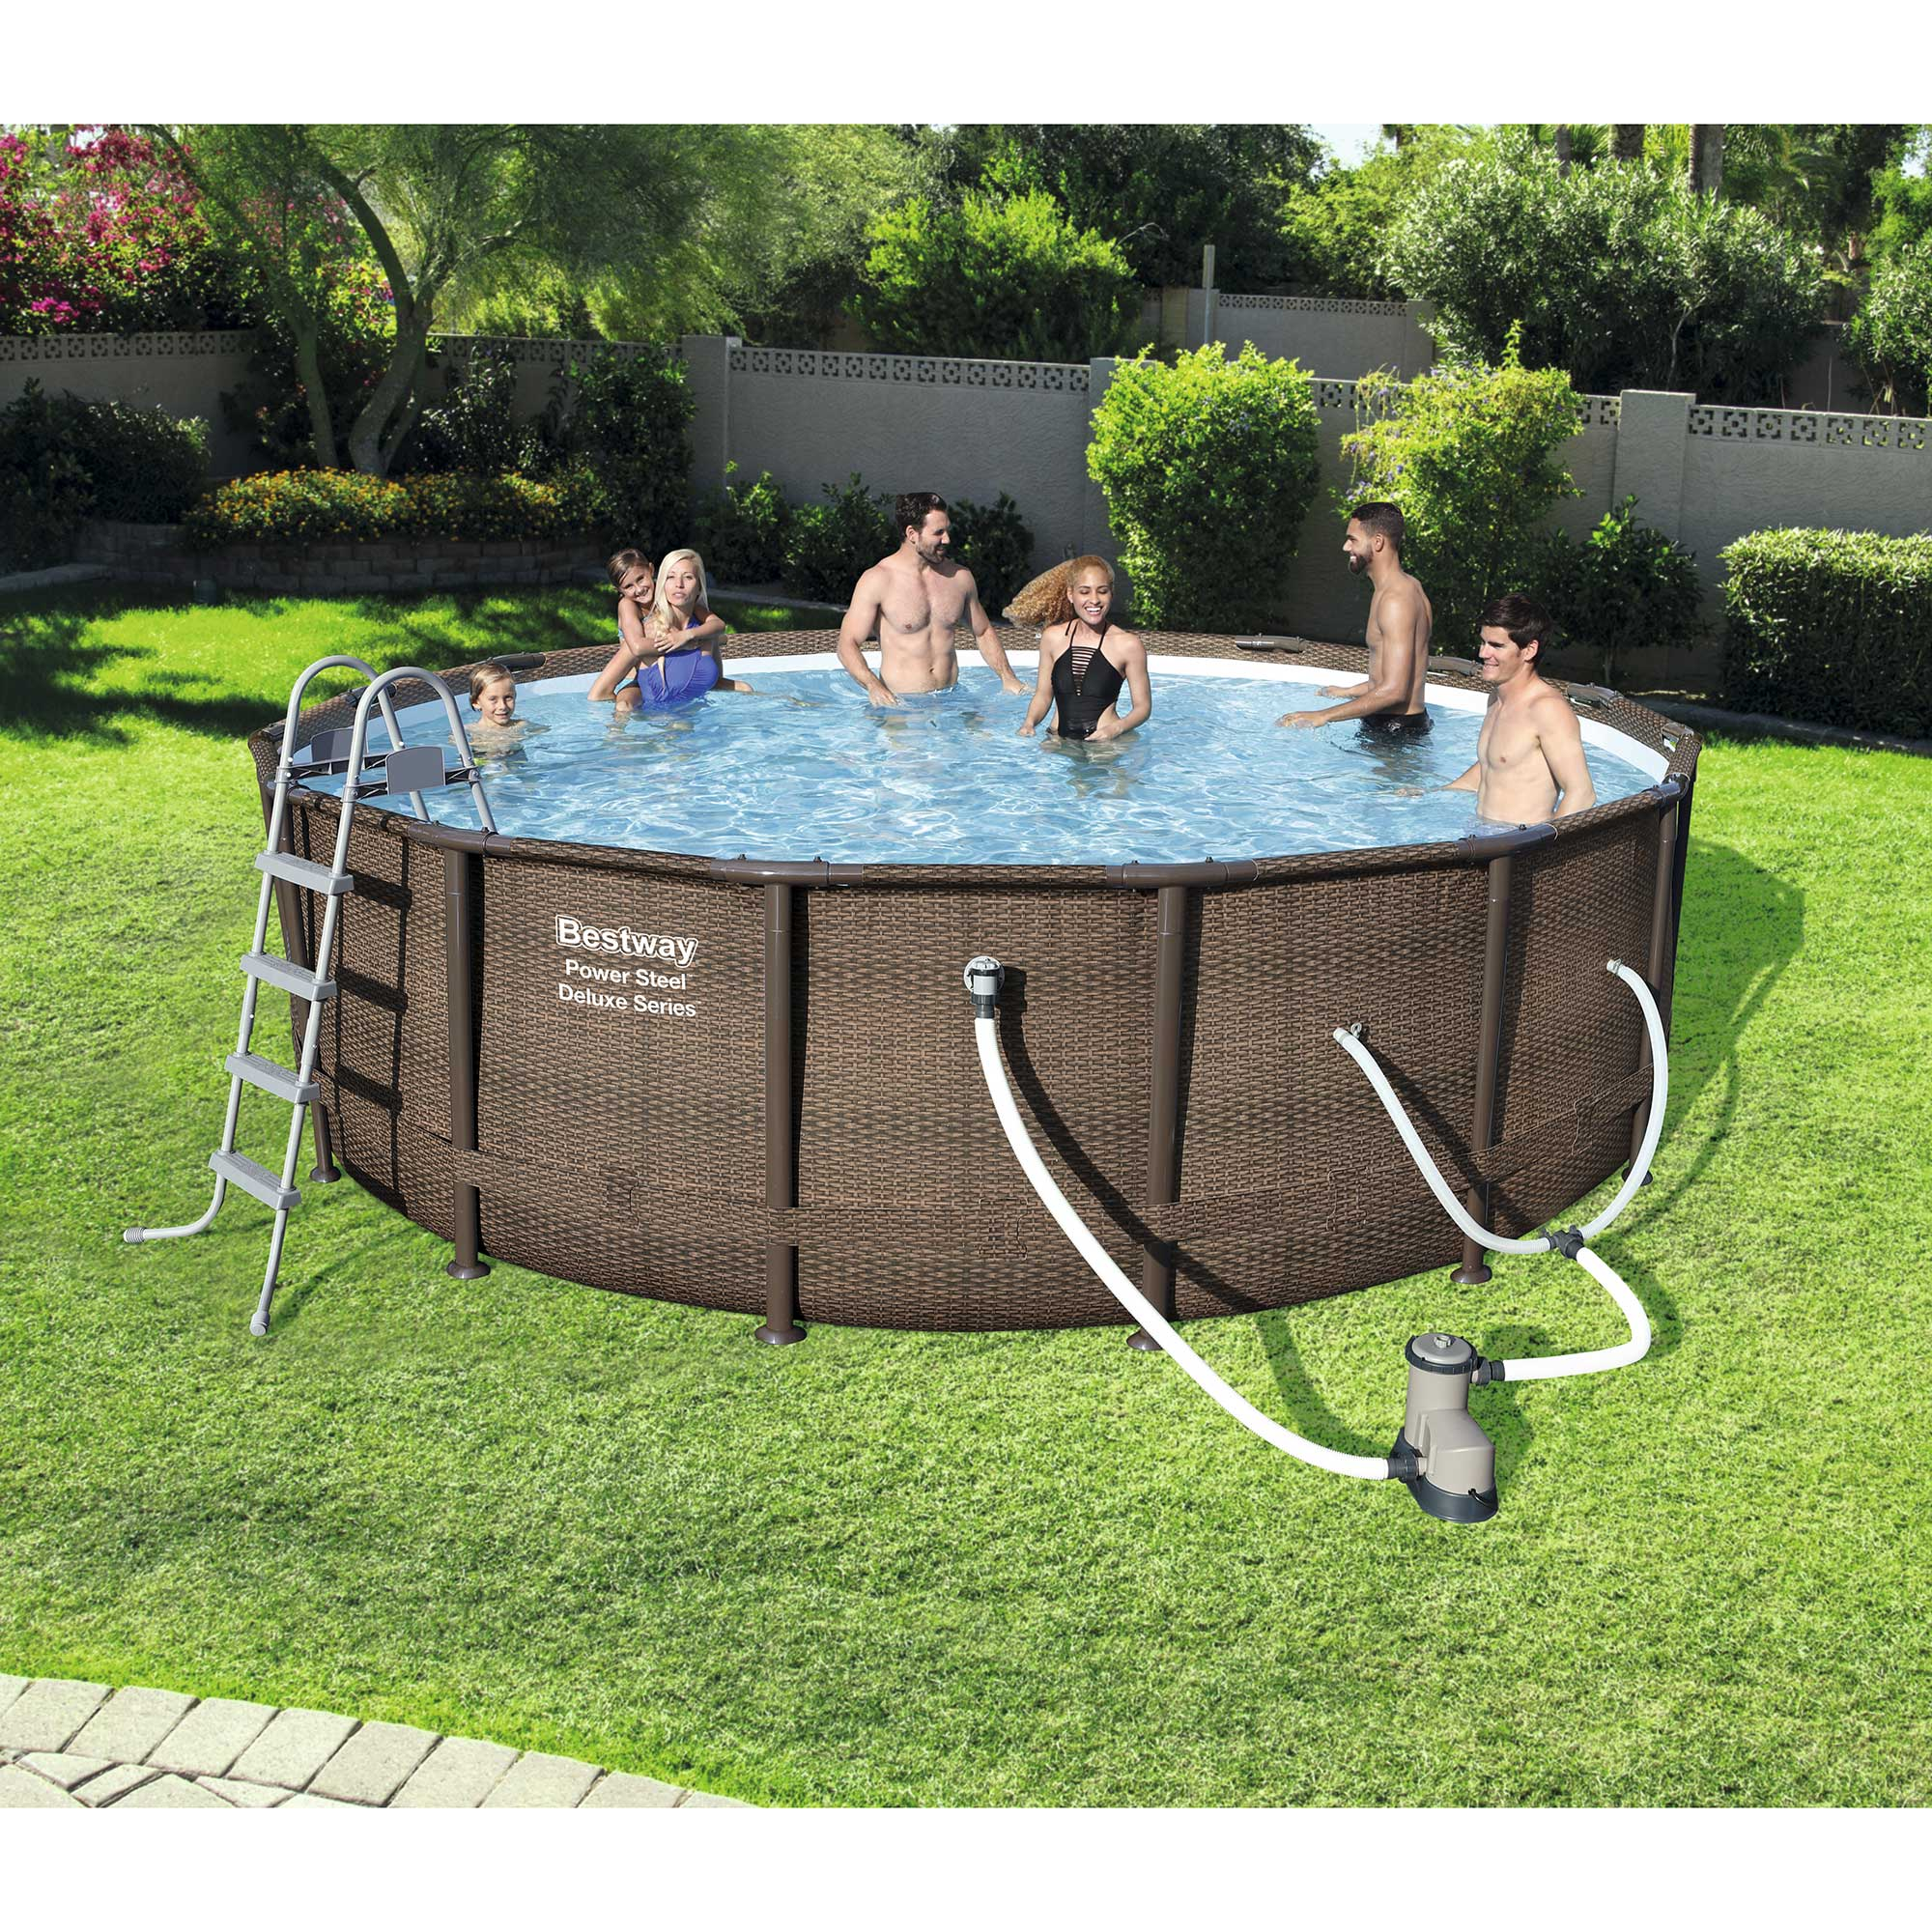 bestway 16 39 x 48 power steel frame above ground swimming pool set with pump 821808151257 ebay. Black Bedroom Furniture Sets. Home Design Ideas